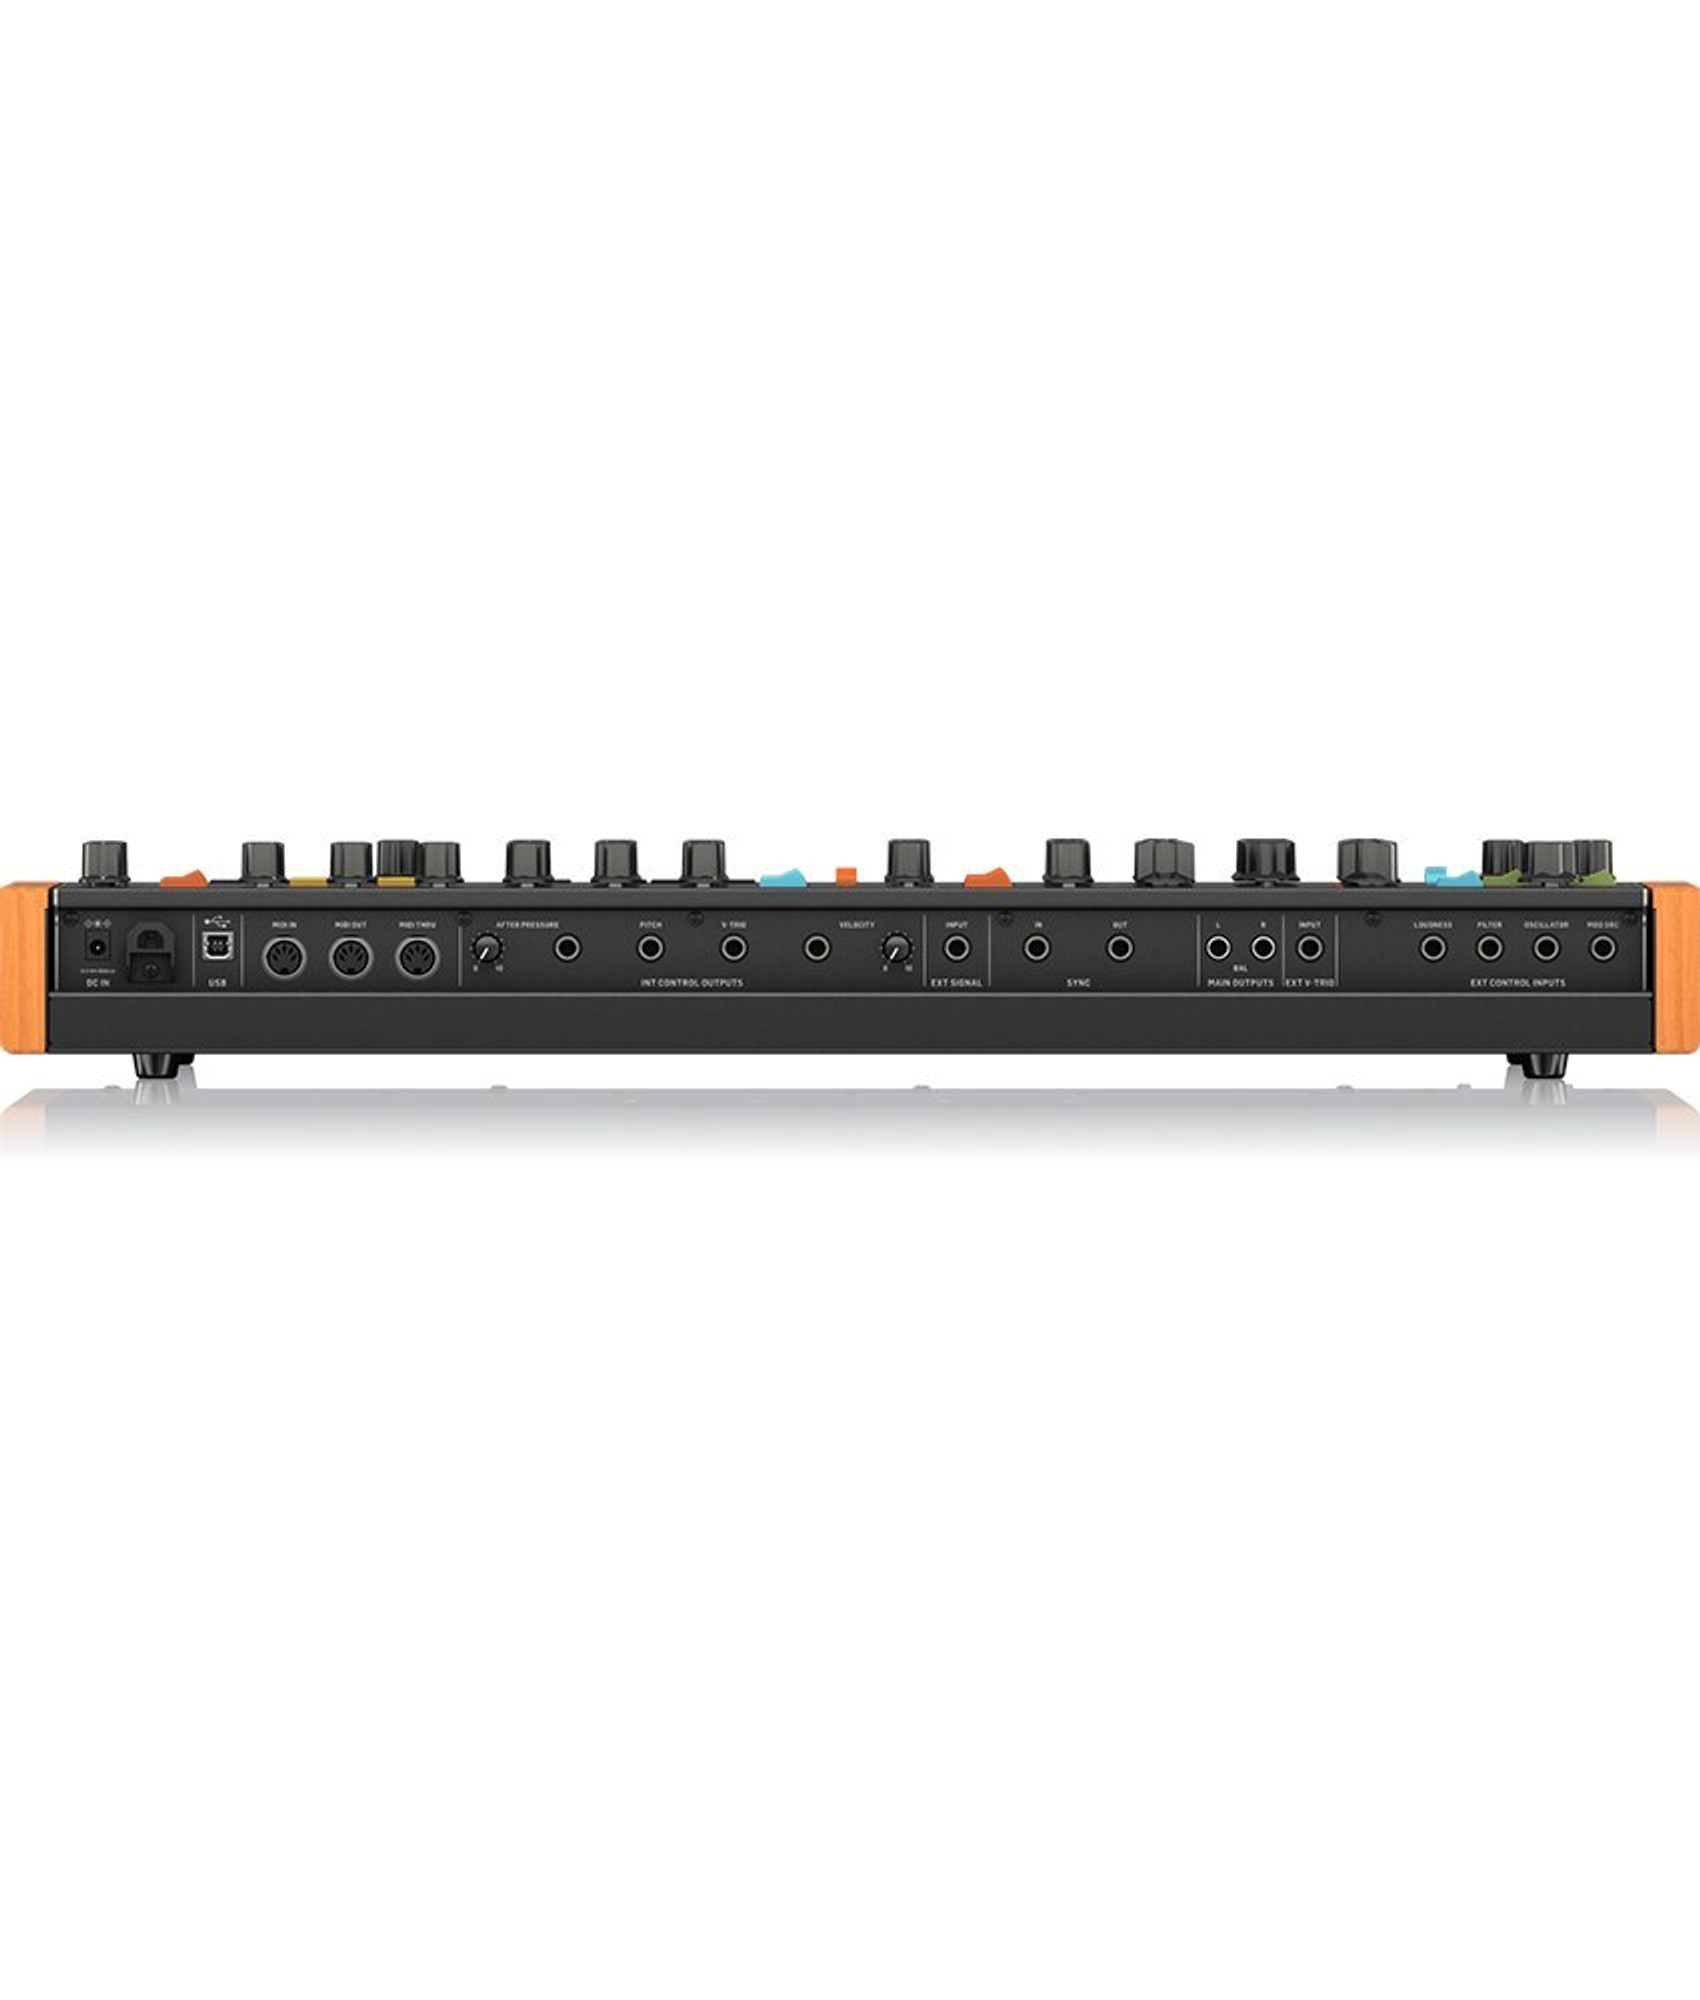 Behringer Poly D Polyphonic Analog Synthesizer Alamo Music Control panel is well laid out, with the added bonus of being able to tilt it towards you. behringer poly d polyphonic analog synthesizer